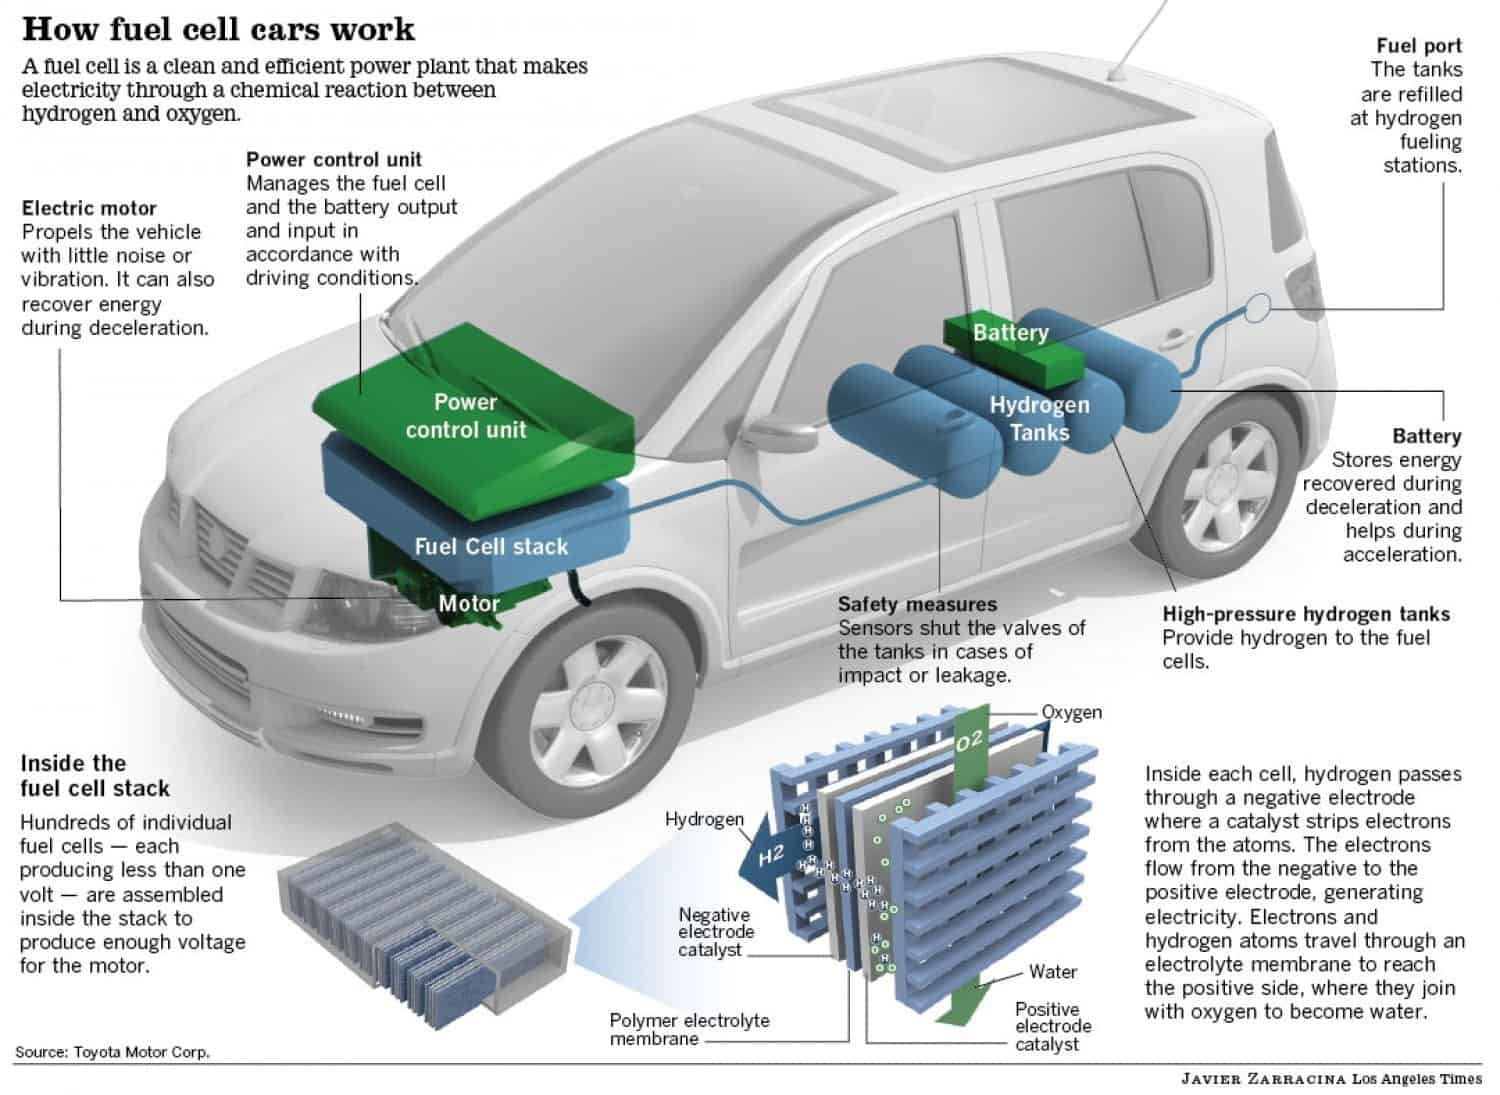 How Do Fuel cell cars work?